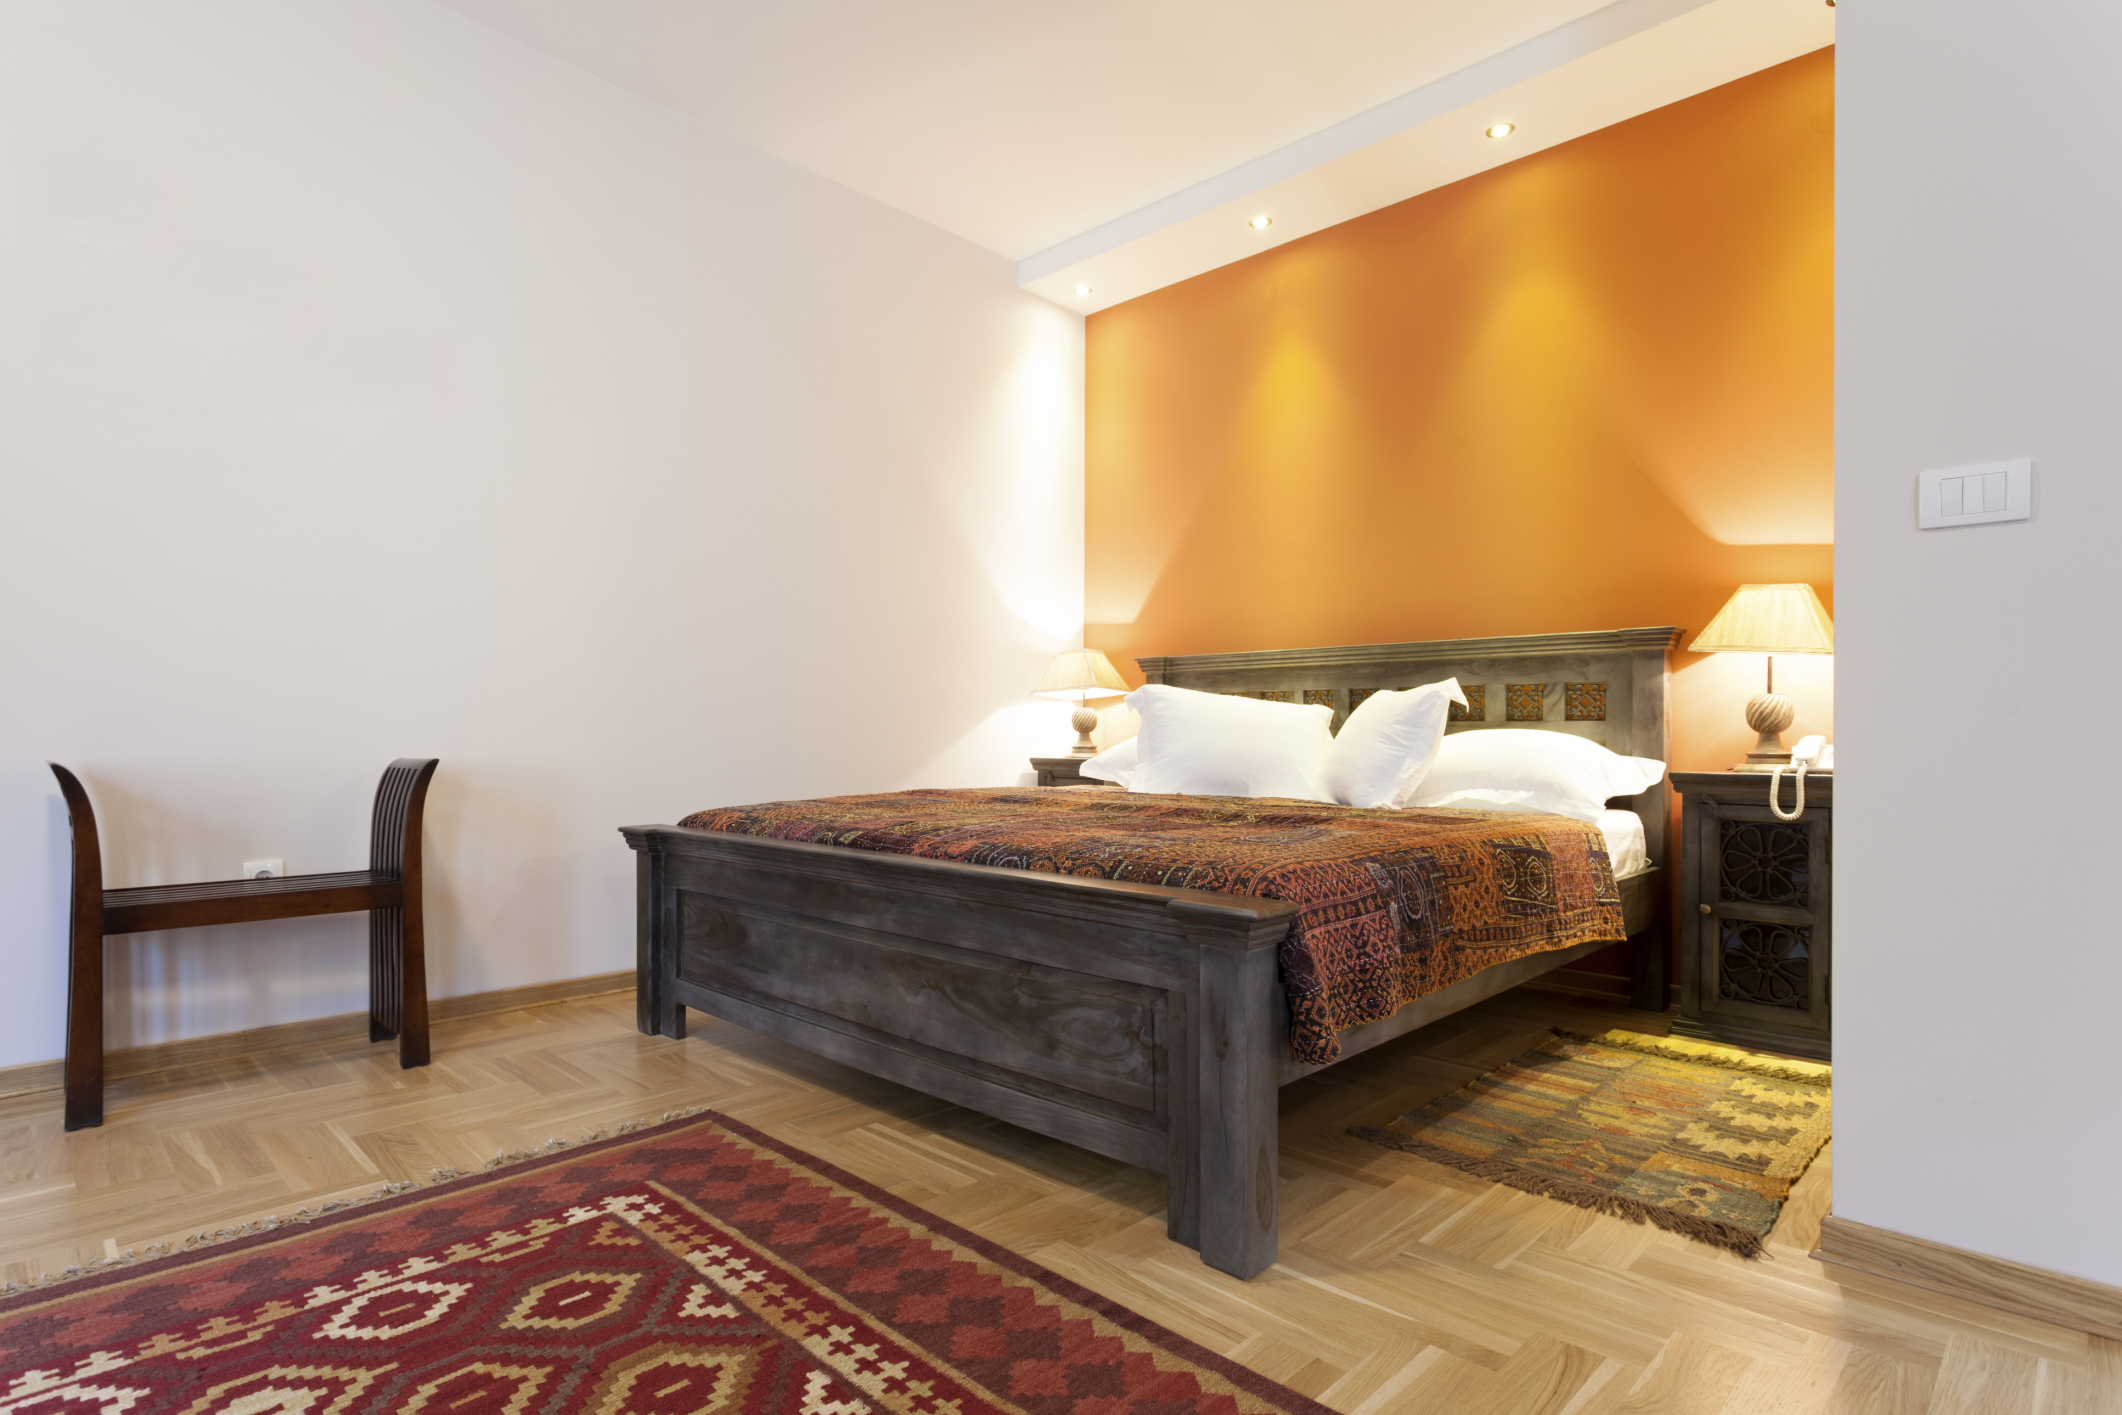 5 Ways to Take Your Bedroom from Good to Great